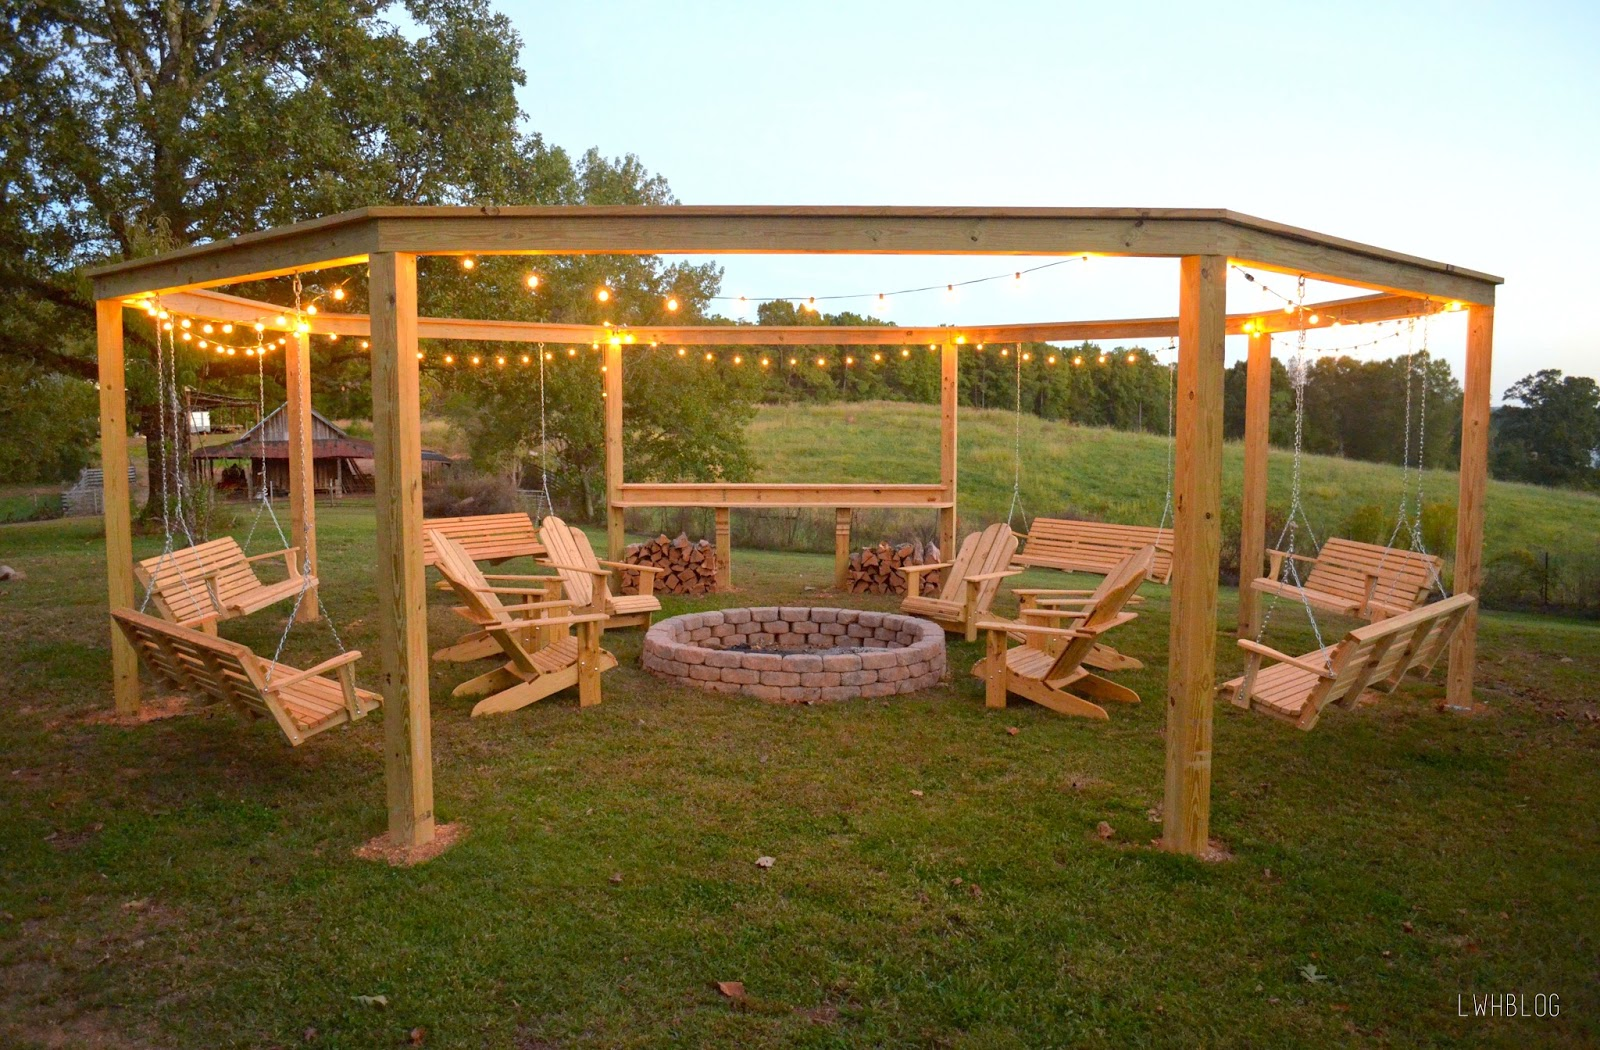 Remodelaholic tutorial build an amazing diy pergola and for How to build a swing chair